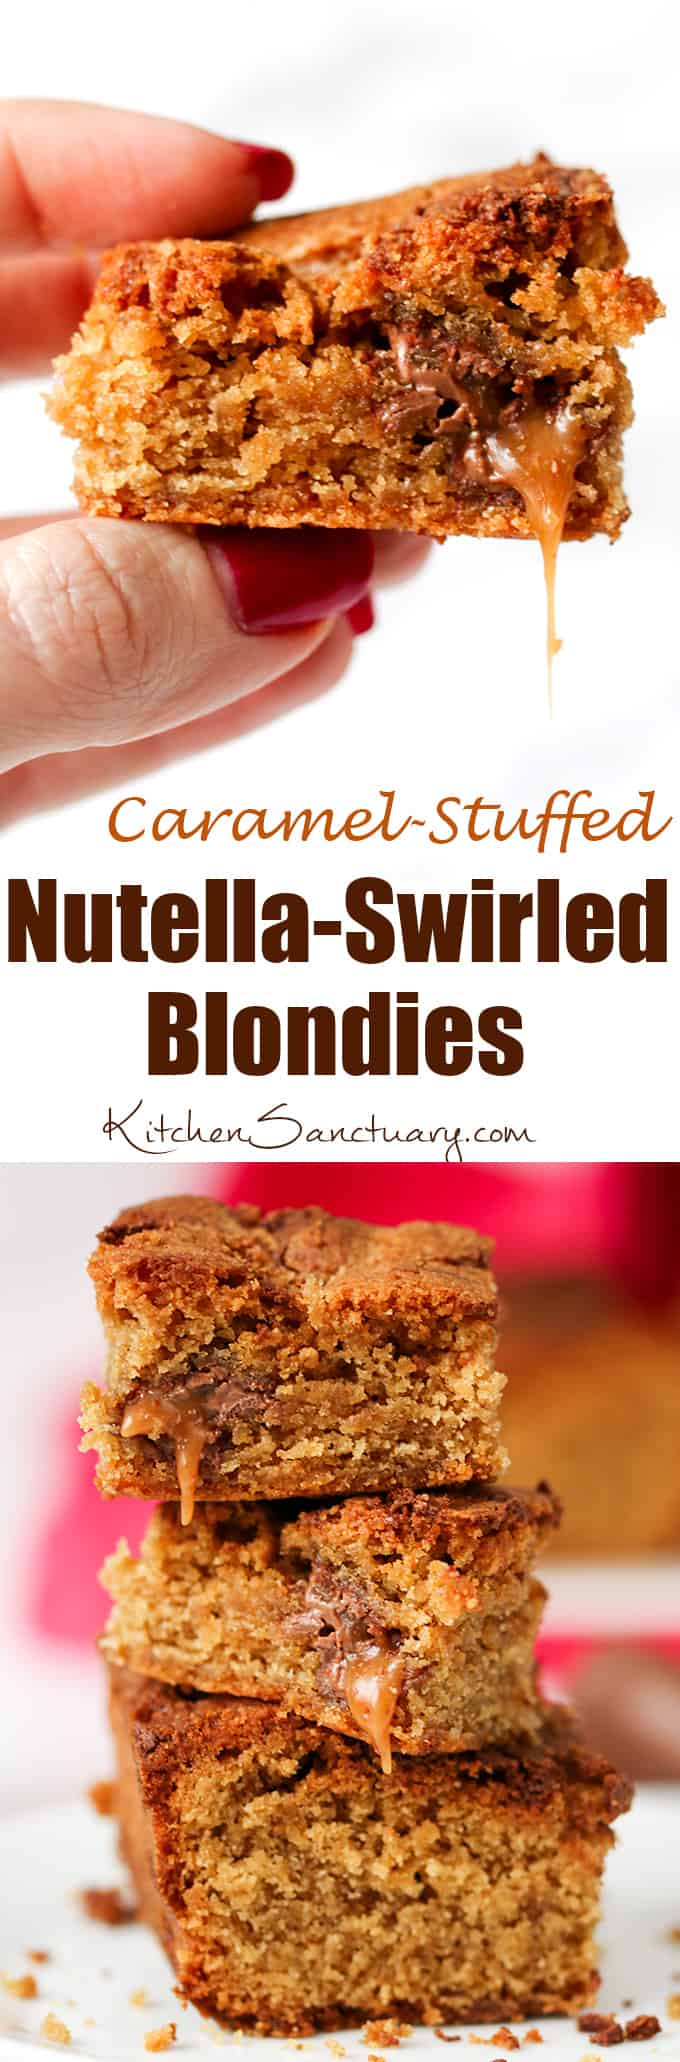 Completely indulgent, these chocolate caramel blondies with swirls of Nutella hit the spot like nothing else!